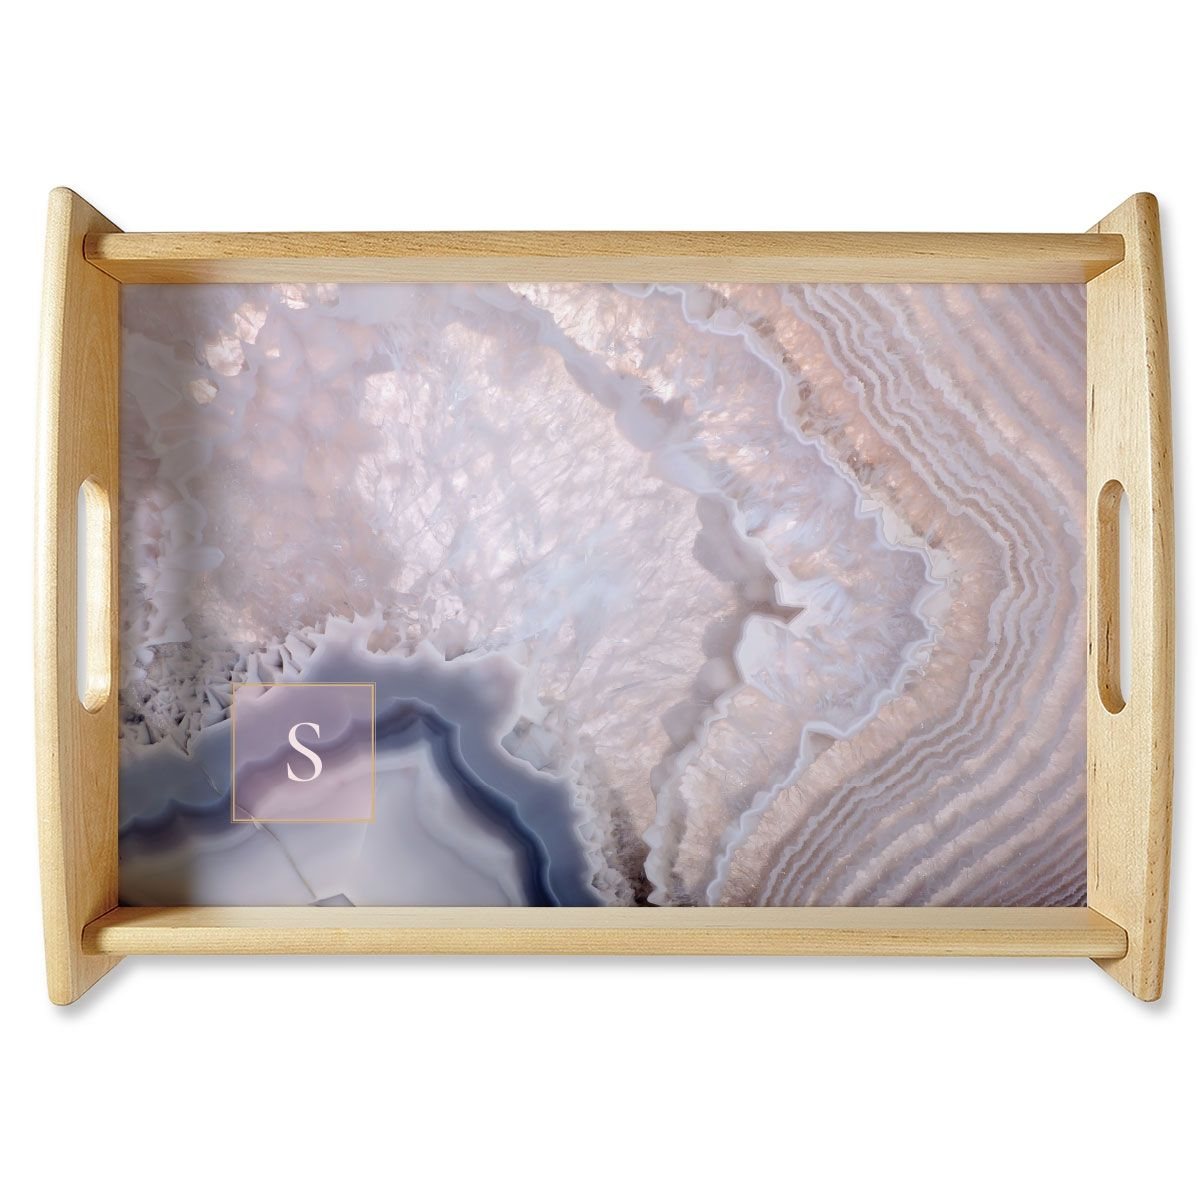 Initialed Agate Natural Wood Personalized Serving Tray